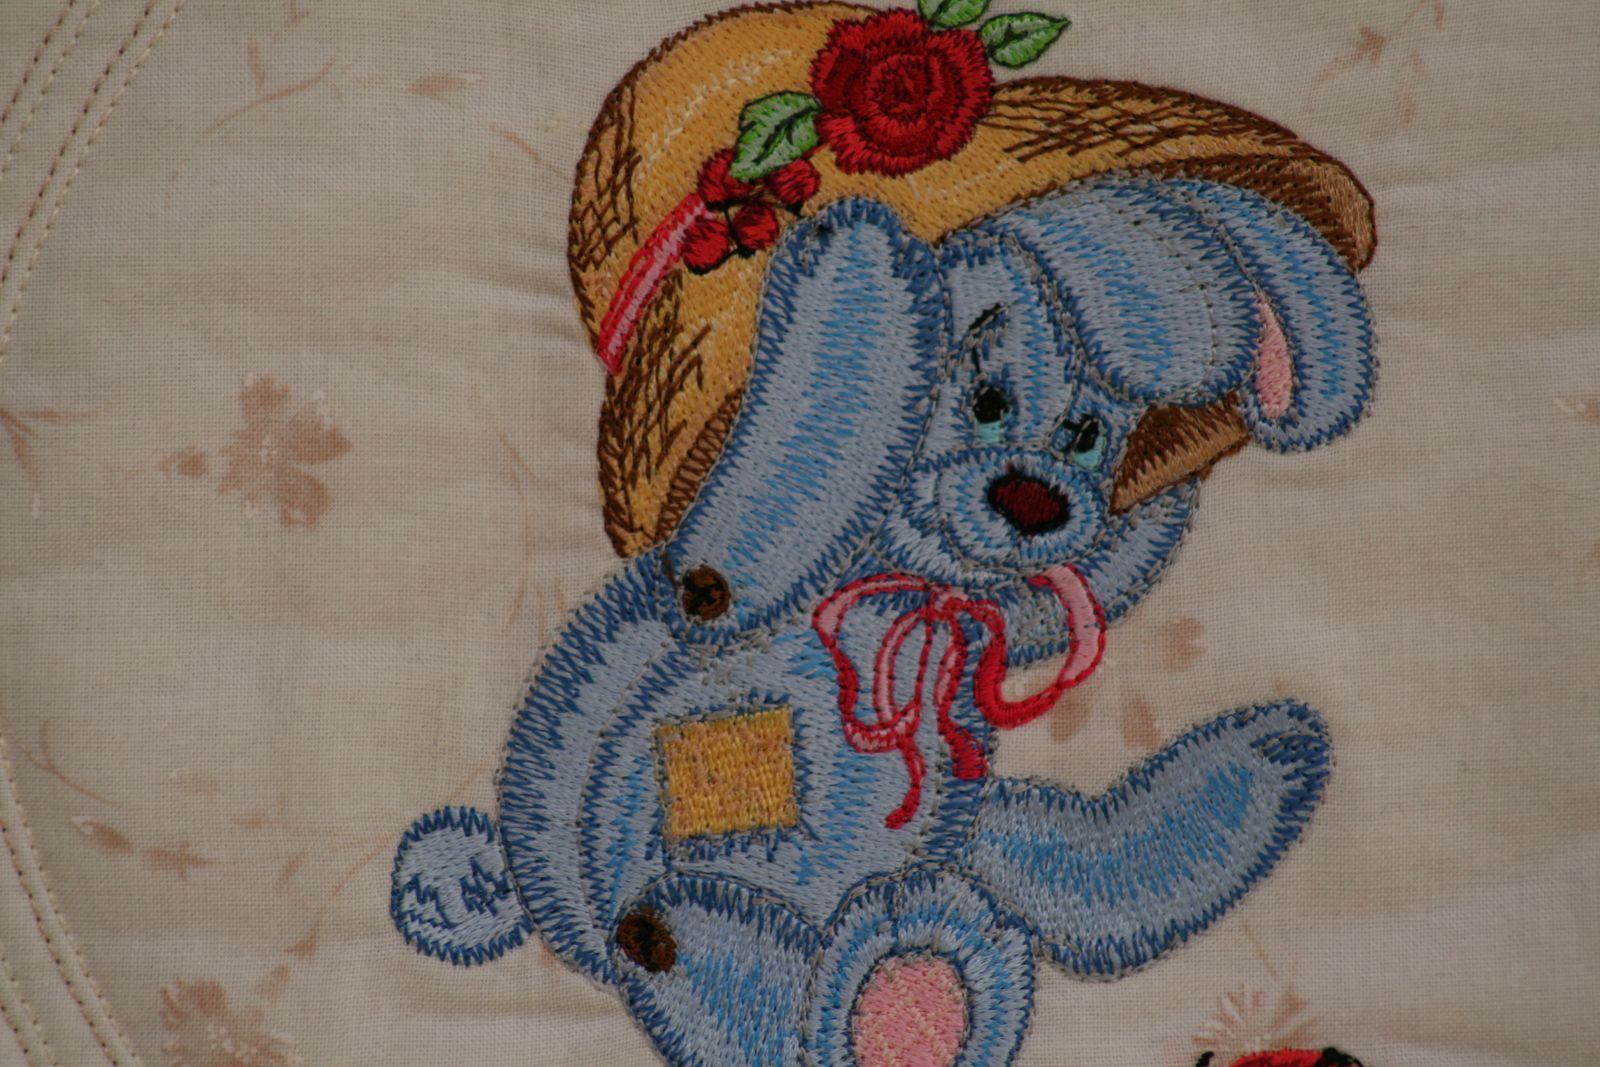 Bunny at embroidery quilt